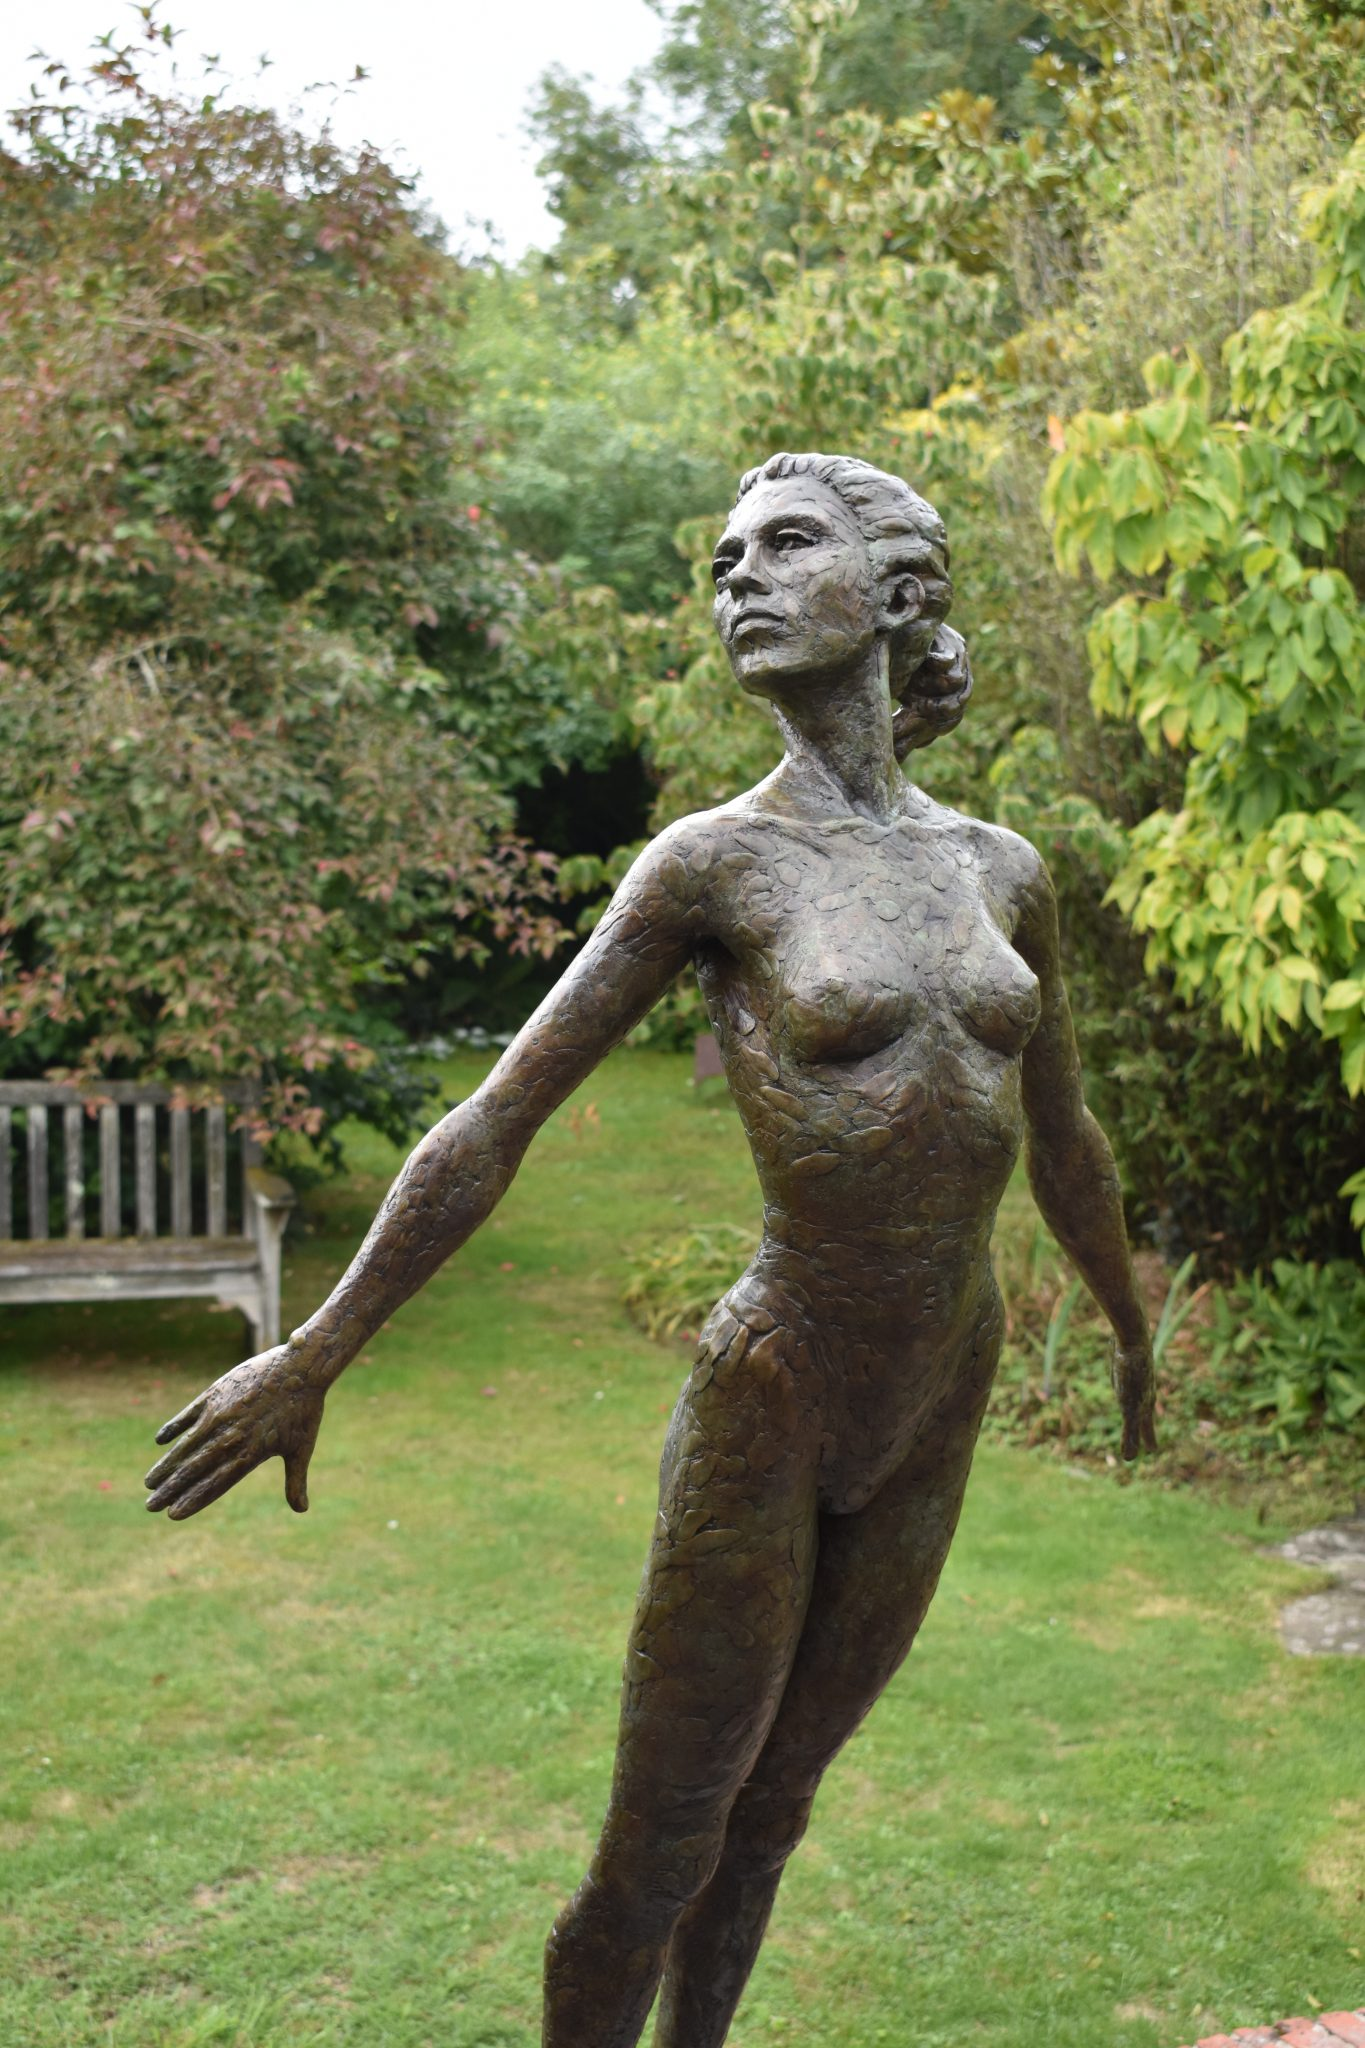 Nude bronze female figure